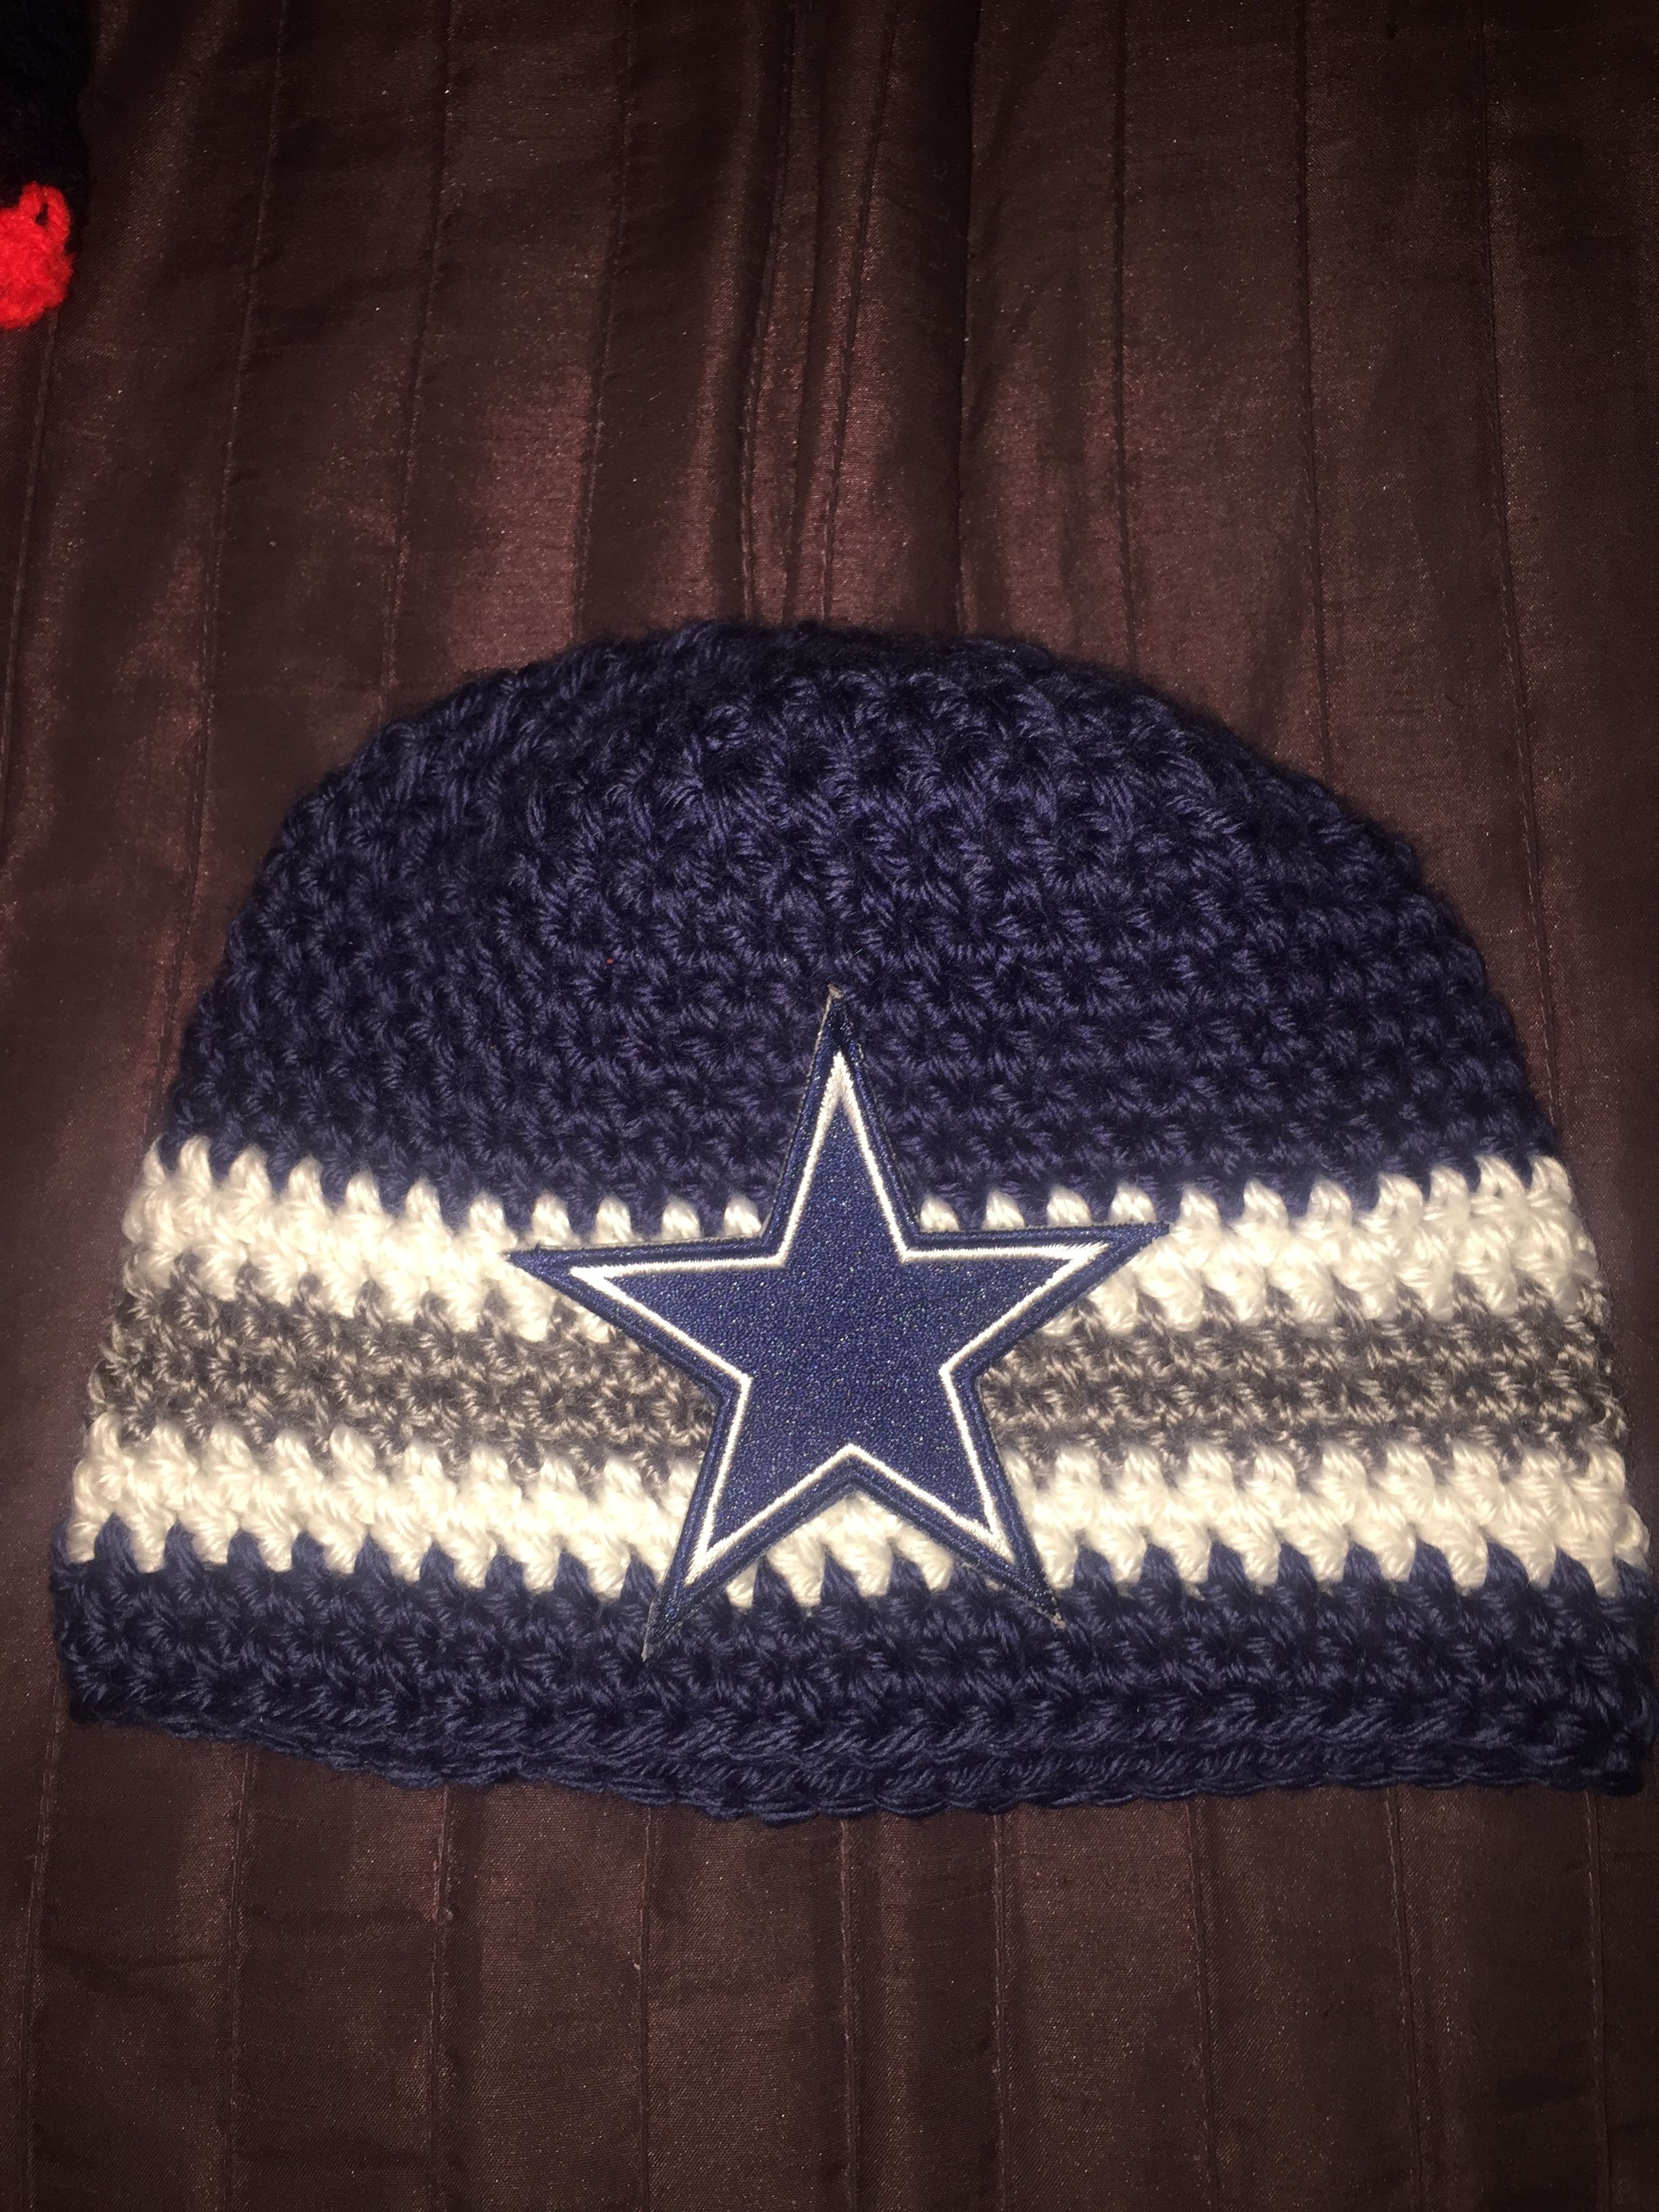 Dallas Cowboy crocheted baby beanie | Items to Crochet | Pinterest ...